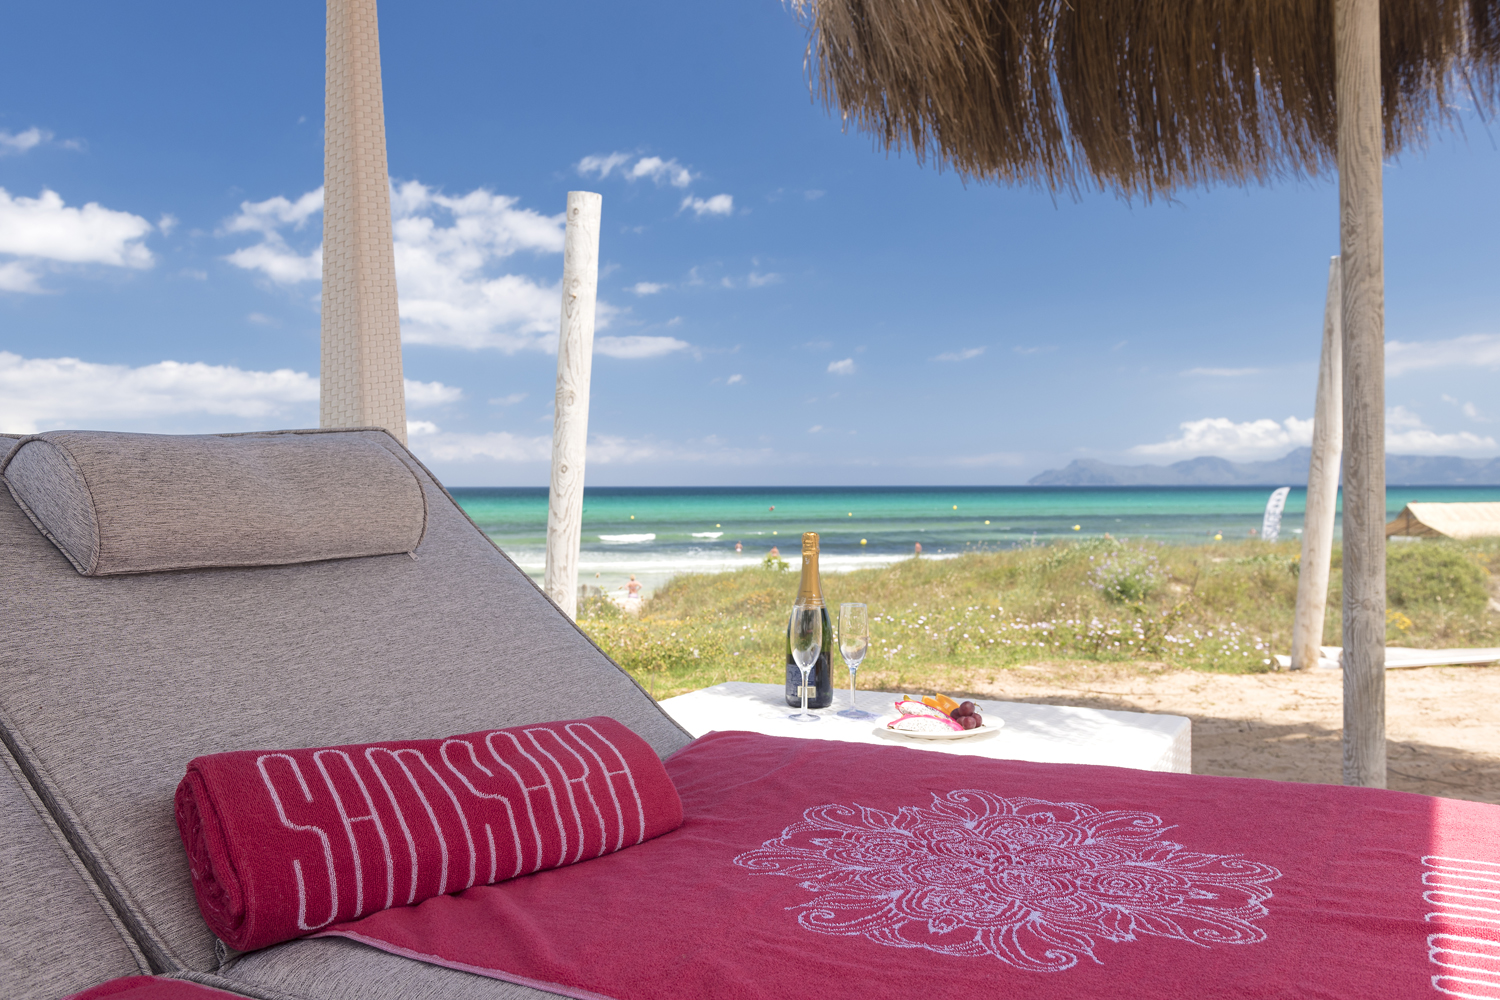 Come to Samsara Beach Club… We are now open!